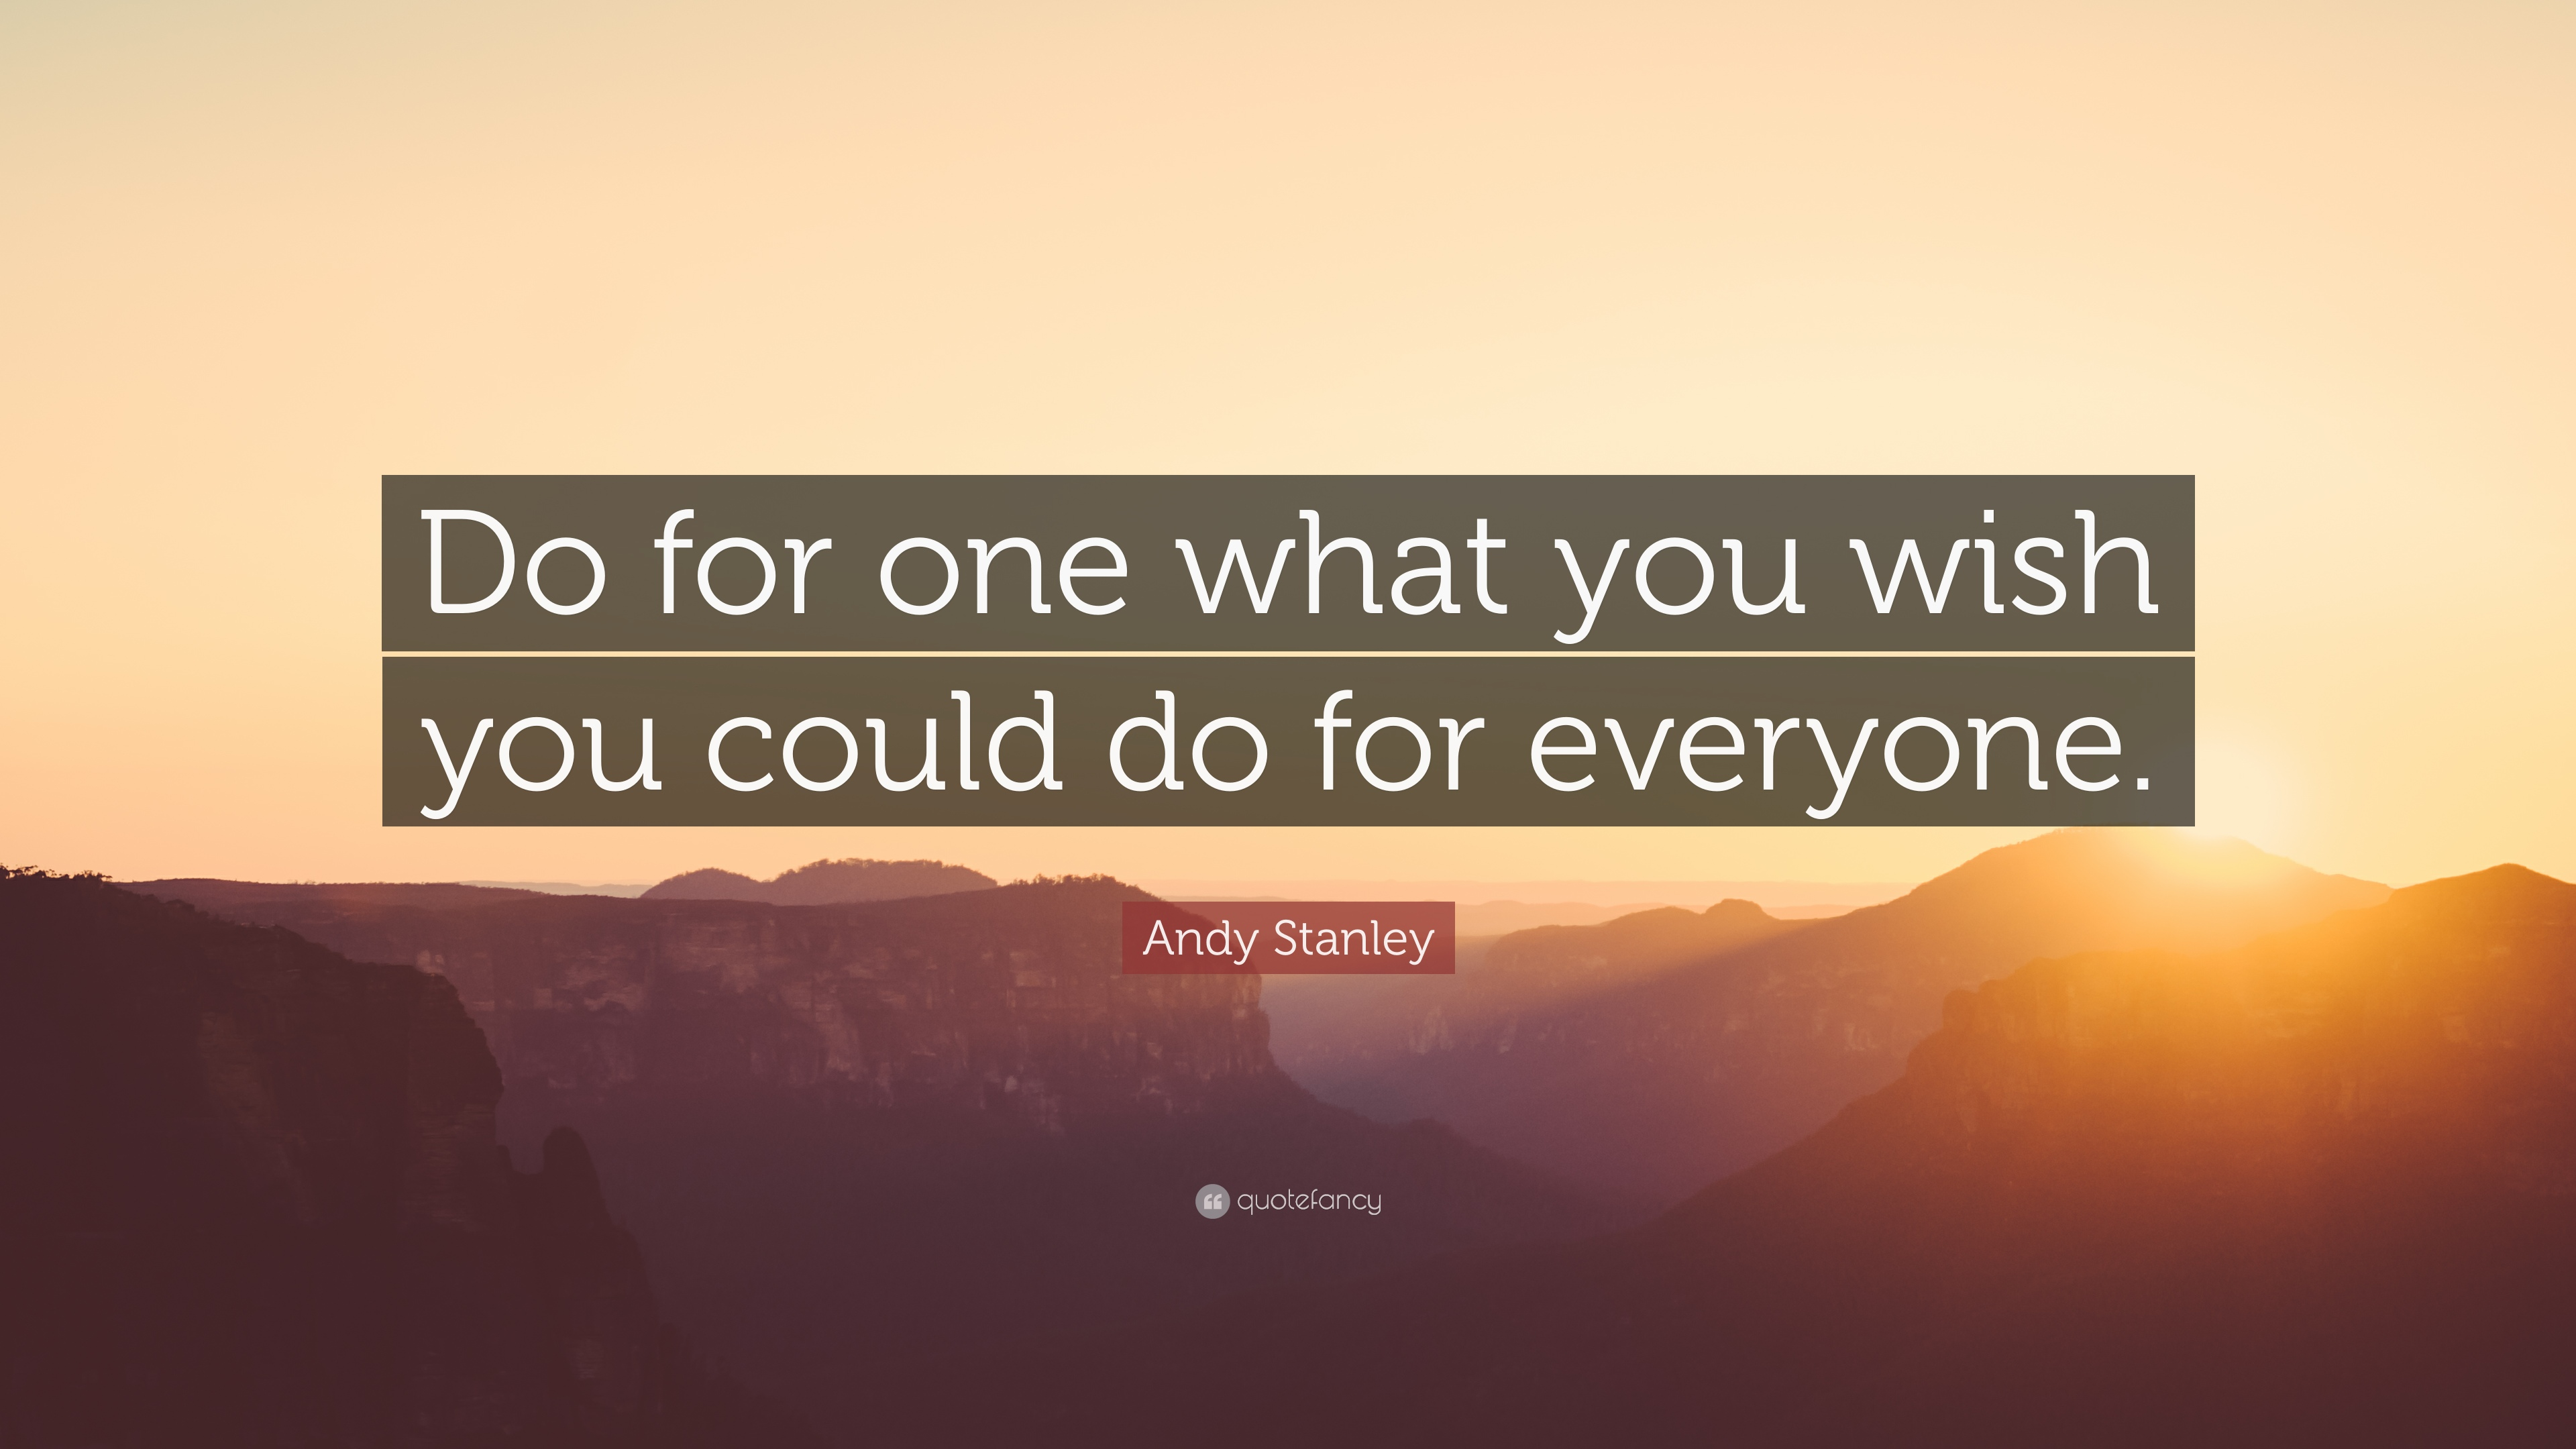 Andy Stanley Quote Do For One What You Wish You Could Do For